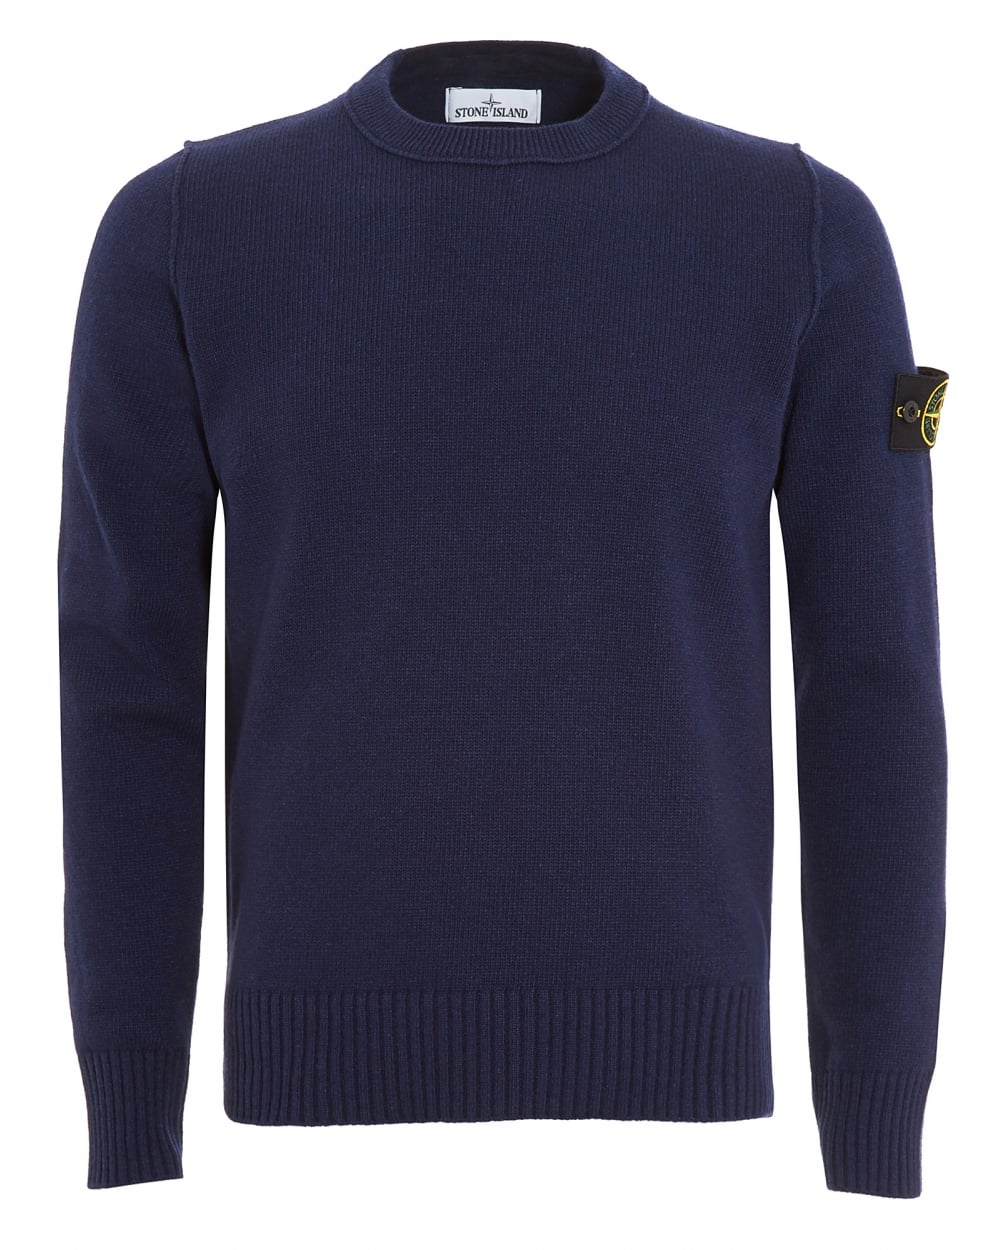 Men's Knitted Jumpers and Cardigans